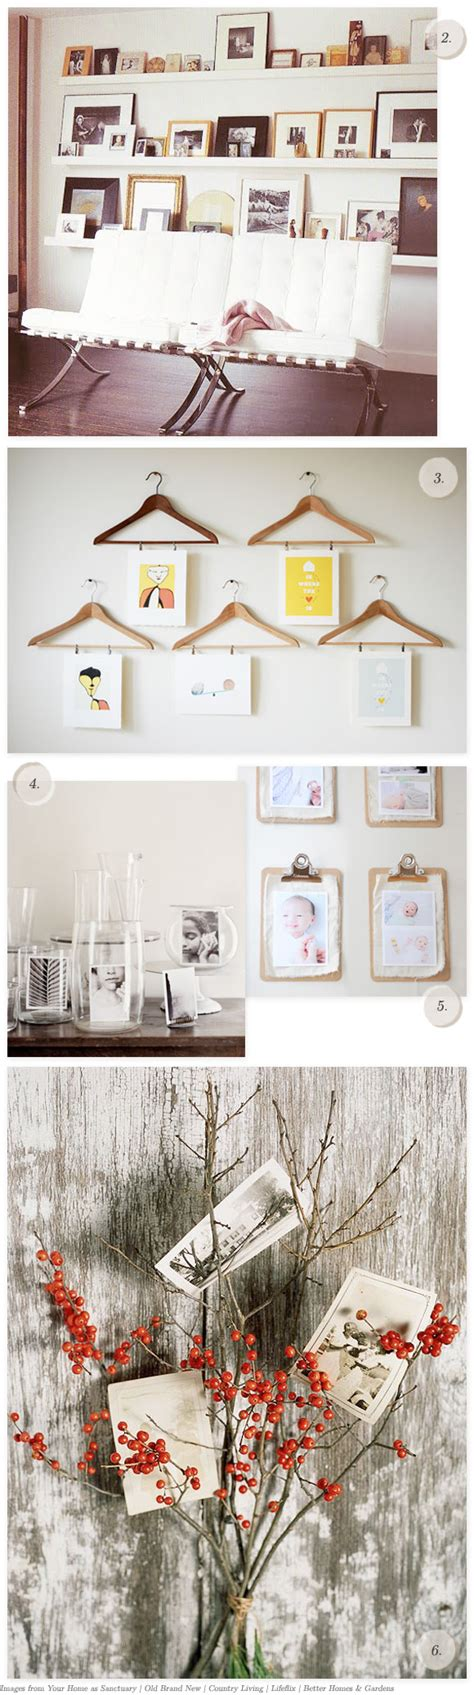 ways to display pictures 6 creative ways to display pictures